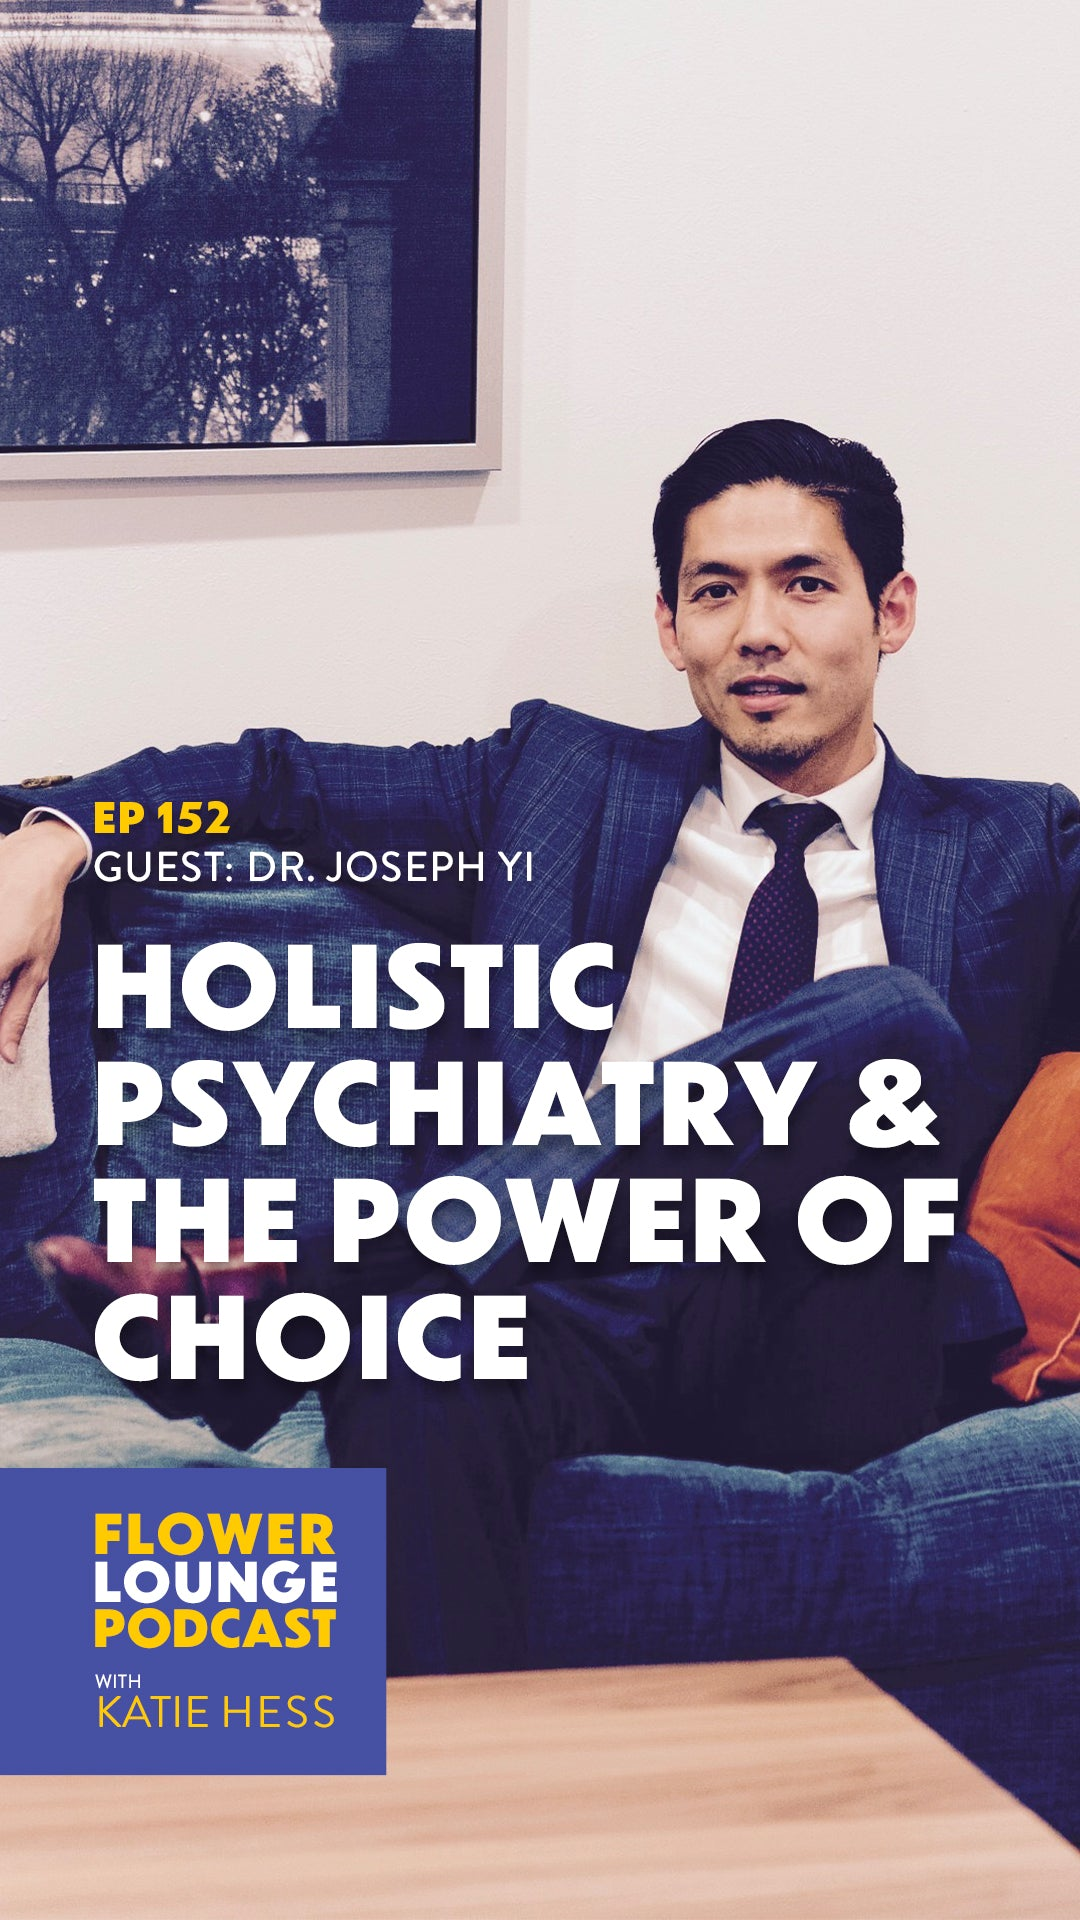 Holistic Psychiatry & the Power of Choice with Dr. Joseph Yi on the Flowerlounge Podcast with Katie Hess